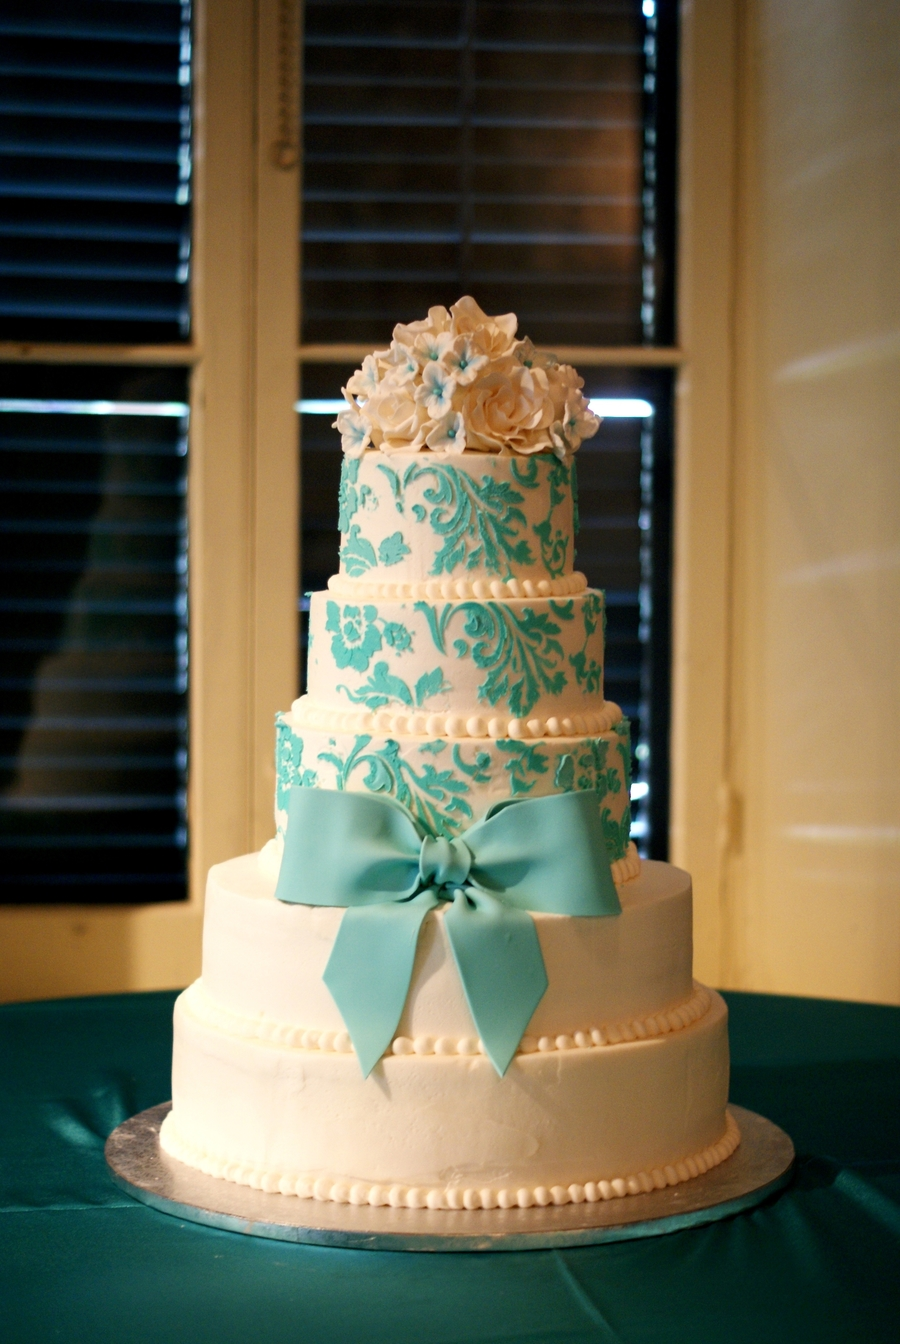 Cake Pictures For Quinceaneras : Huge Quincenera Cake! - CakeCentral.com